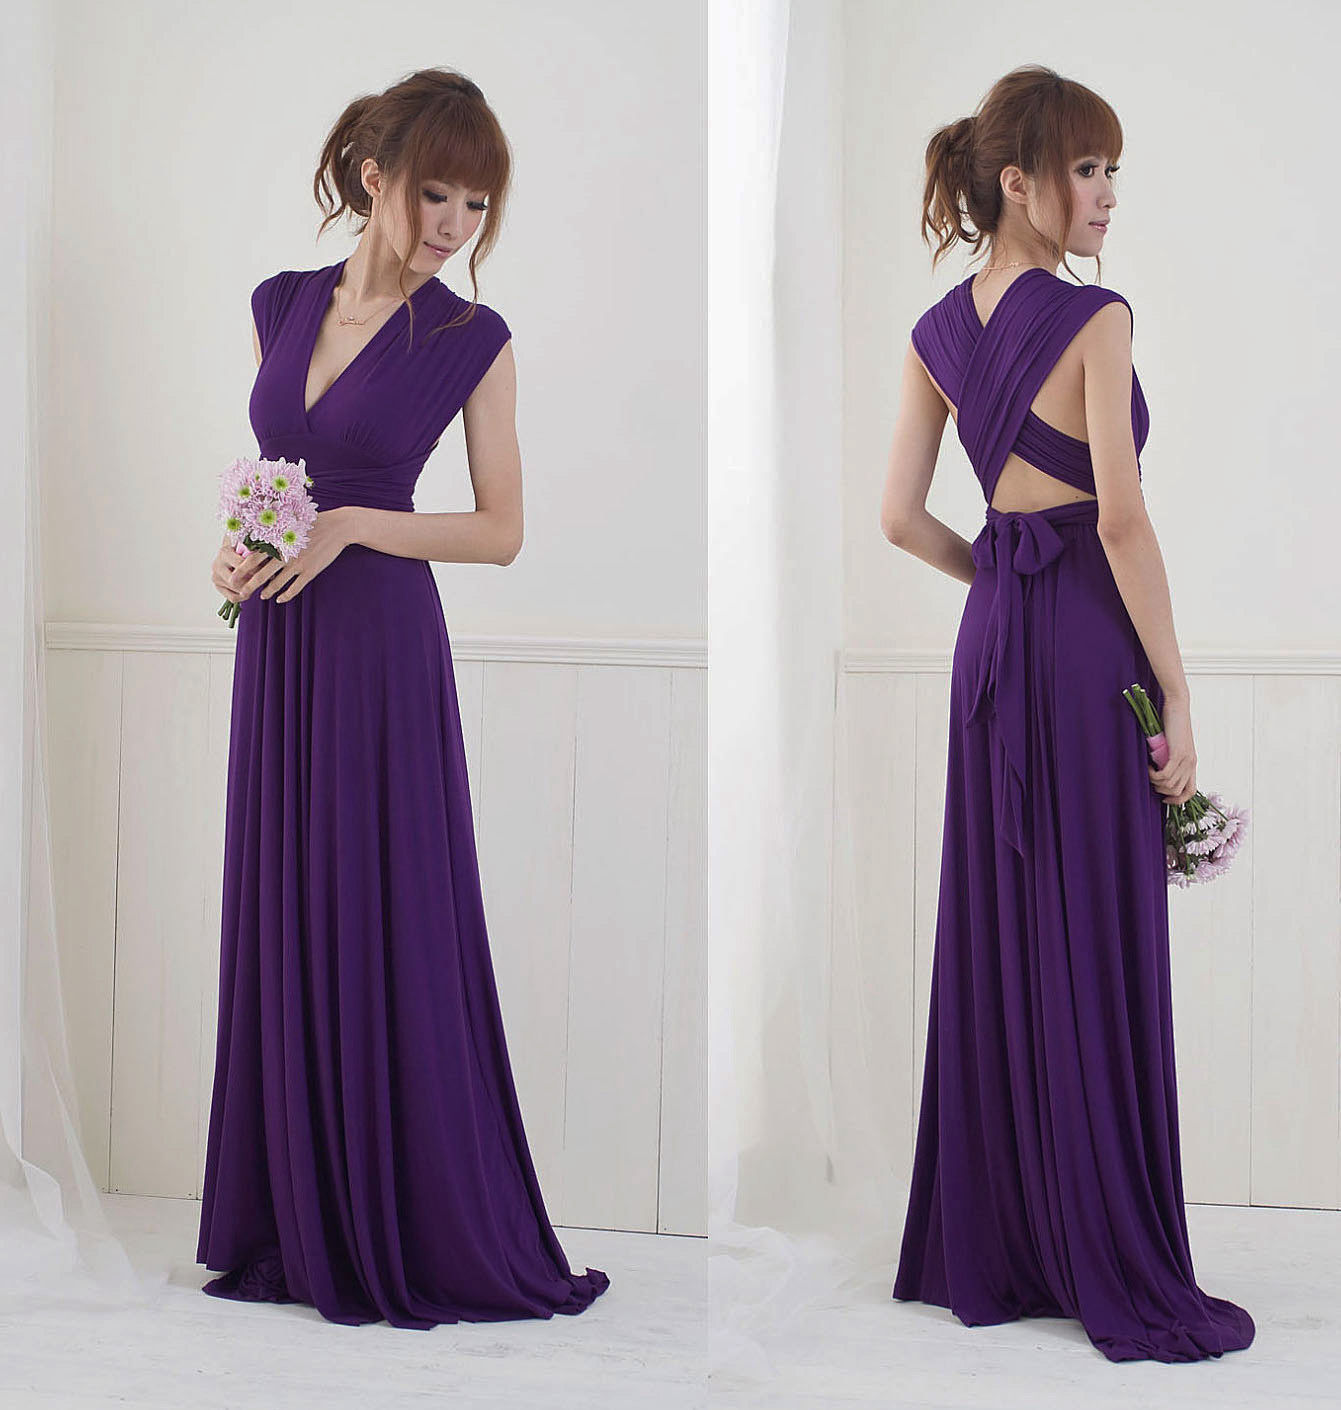 Purple infinity dress bridesmaids dress convertible dress plum purple infinity dress bridesmaids dress convertible dress purple long twist wrap maxi dress ombrellifo Image collections